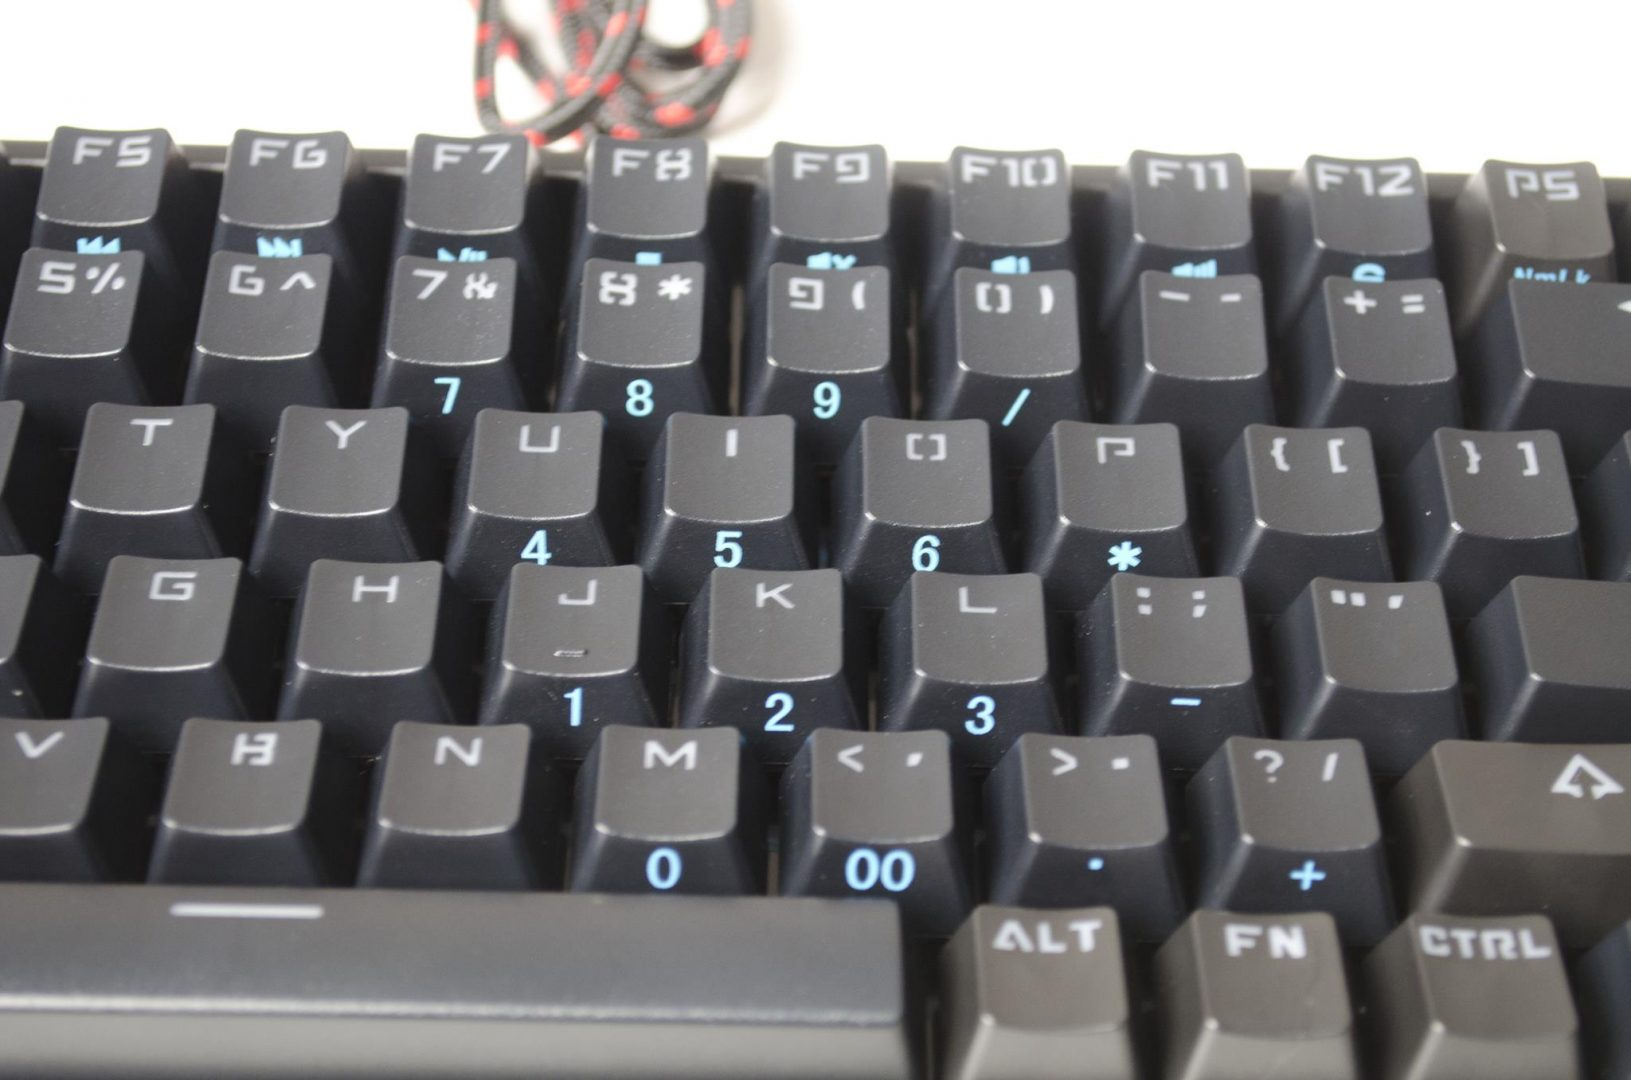 drevo gramr keyboard review_2